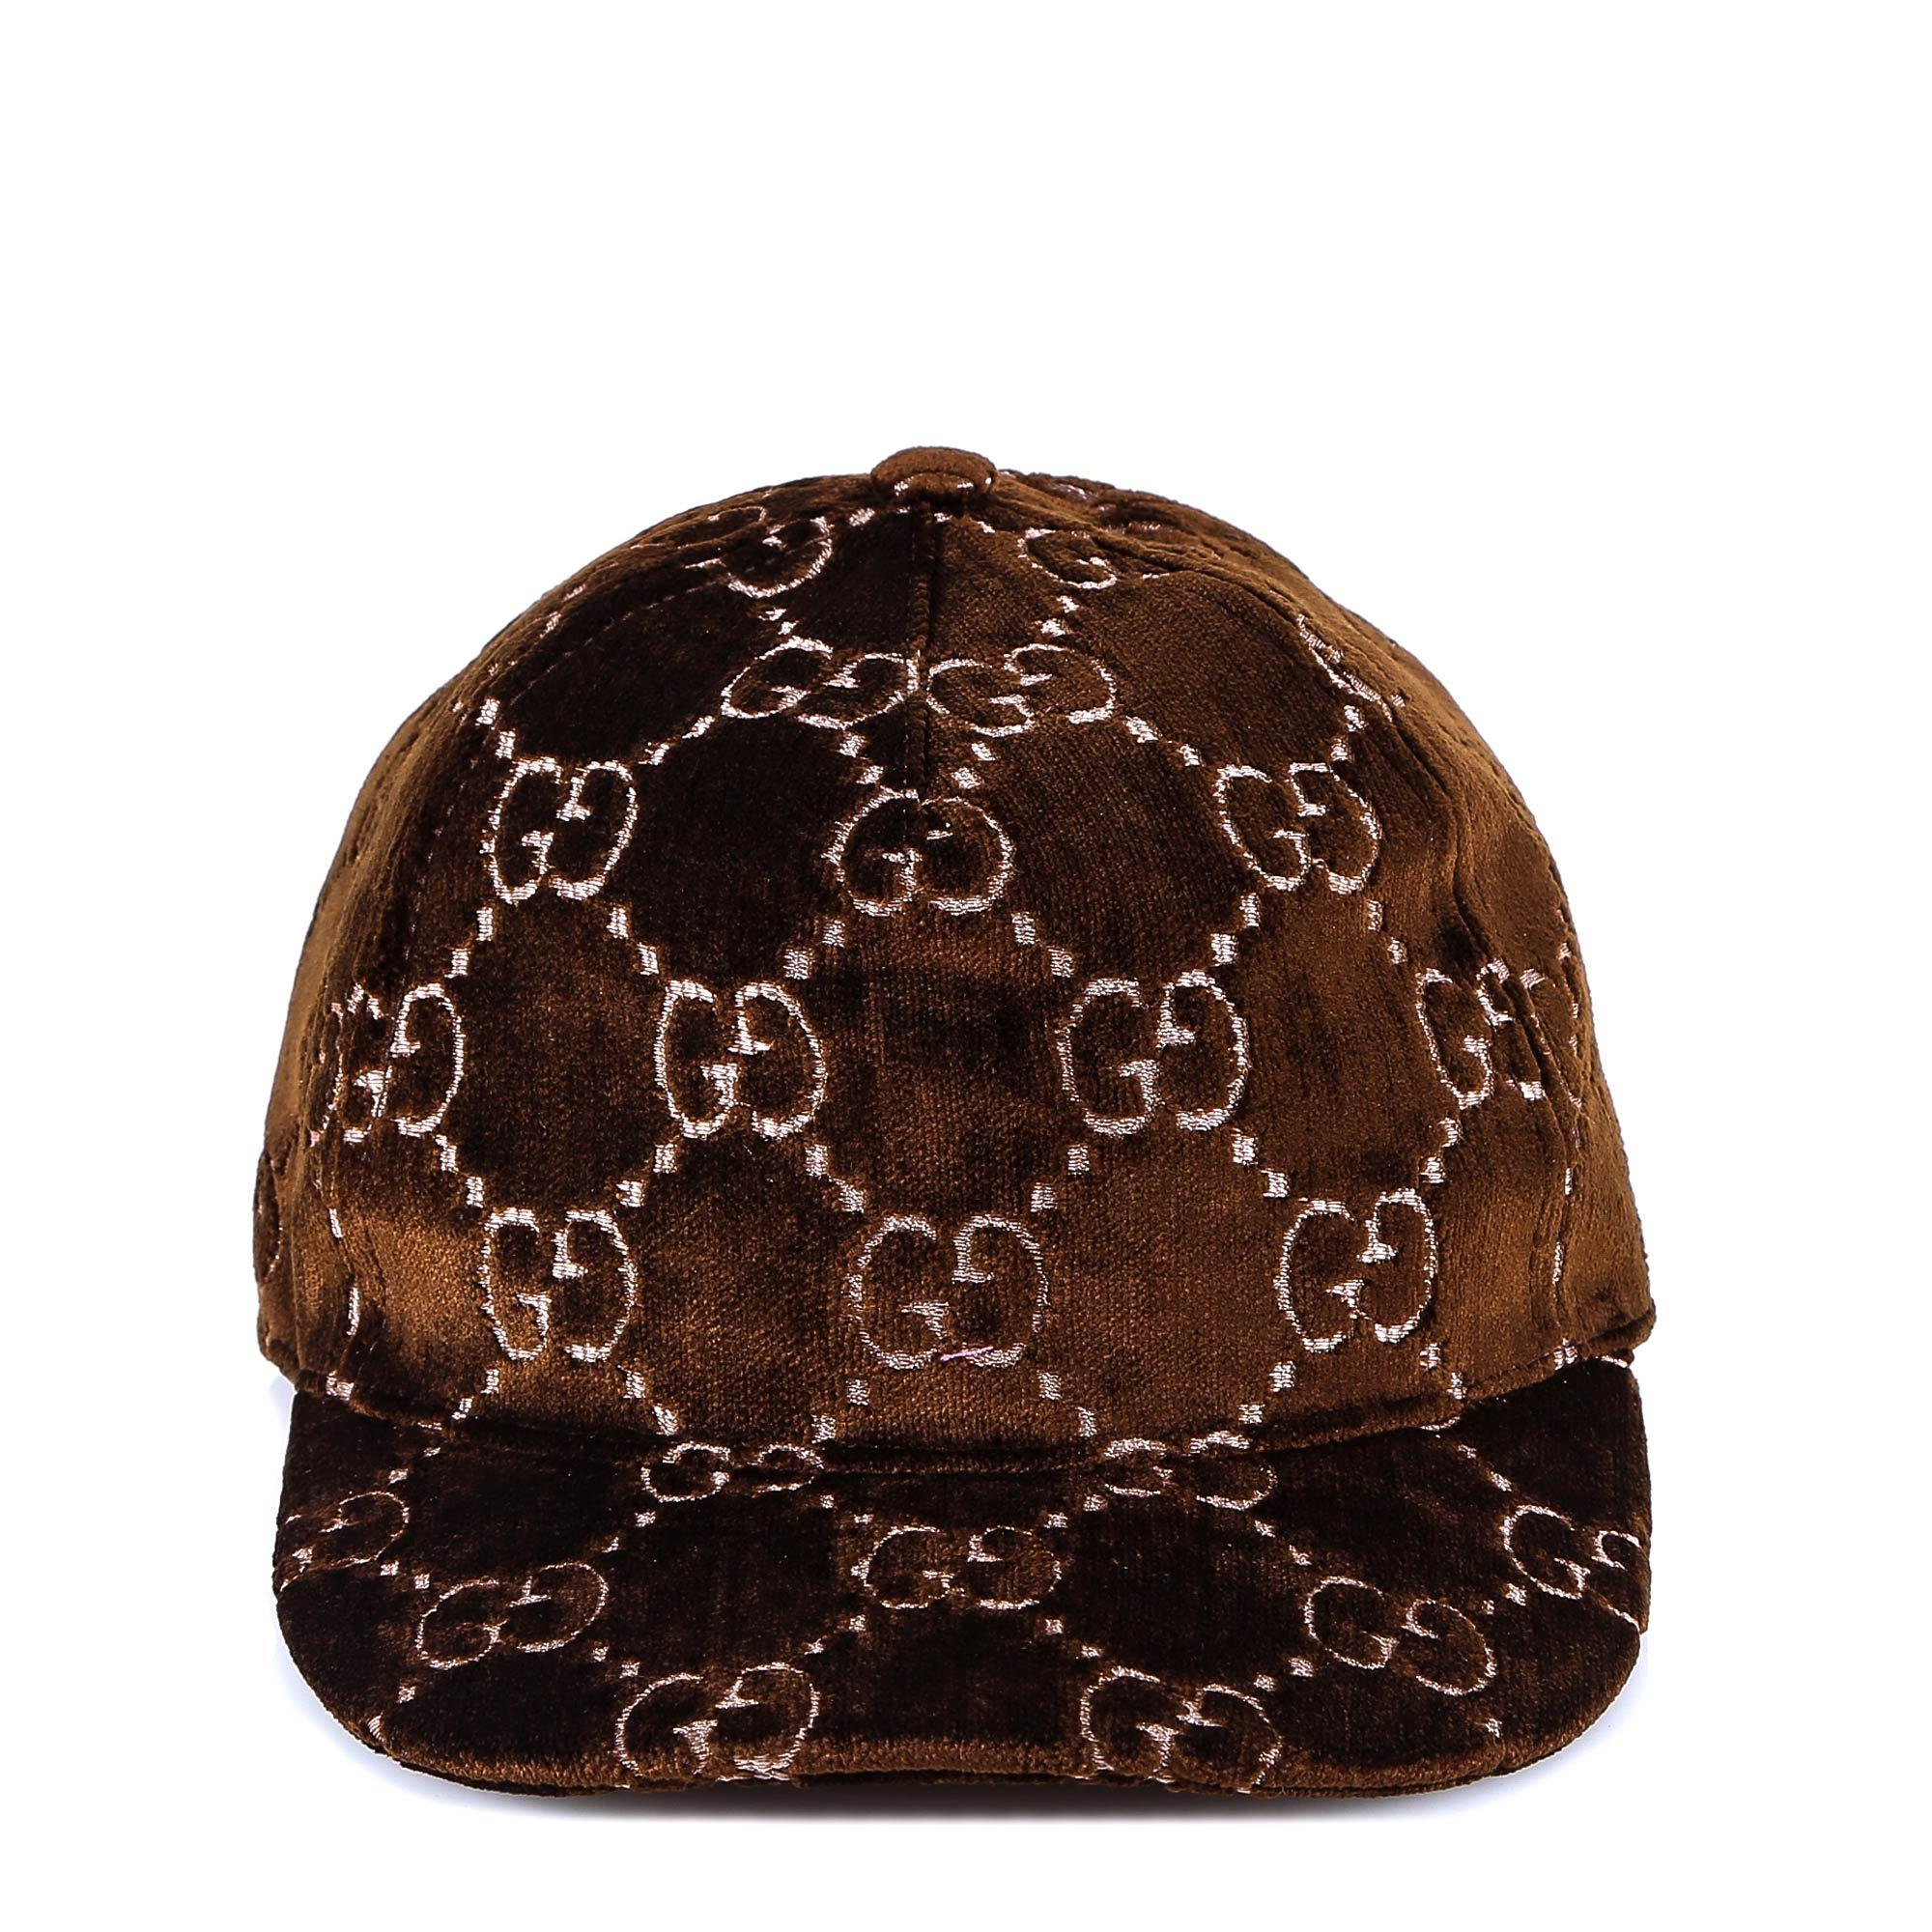 4106990c236 Lyst - Gucci GG Supreme Velvet Snapback Hat in Brown - Save 42%